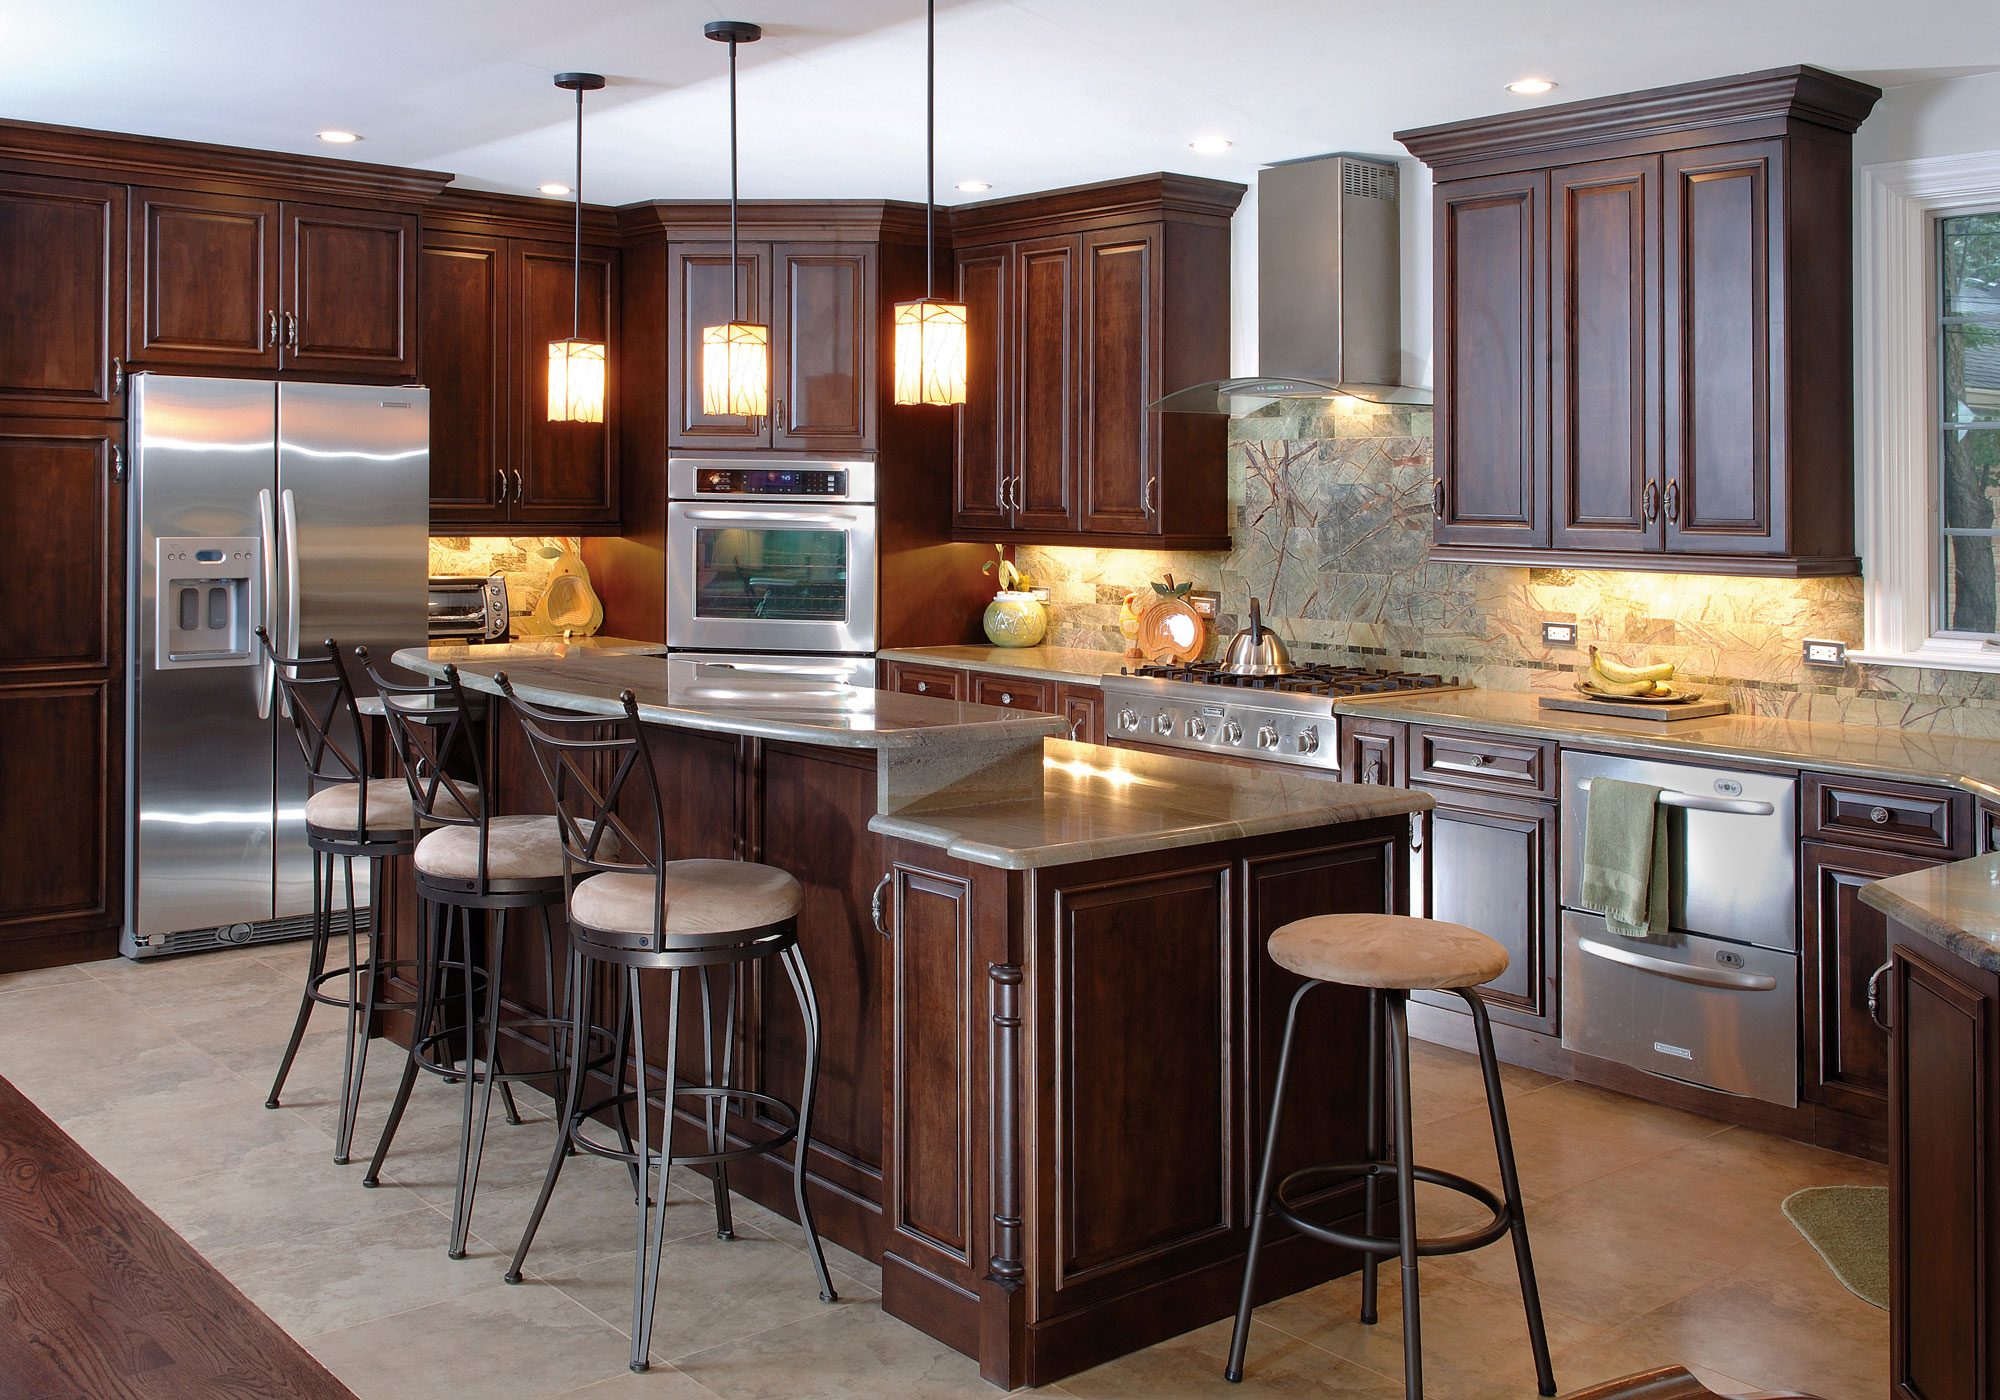 Cream Paint Color Ideas For Modern Kitchen With Cherry Cabinets Colors Want To Have The Best Look Of Your Kitchen? Use The Kitchen Paint Colors With Cherry Cabinets ...